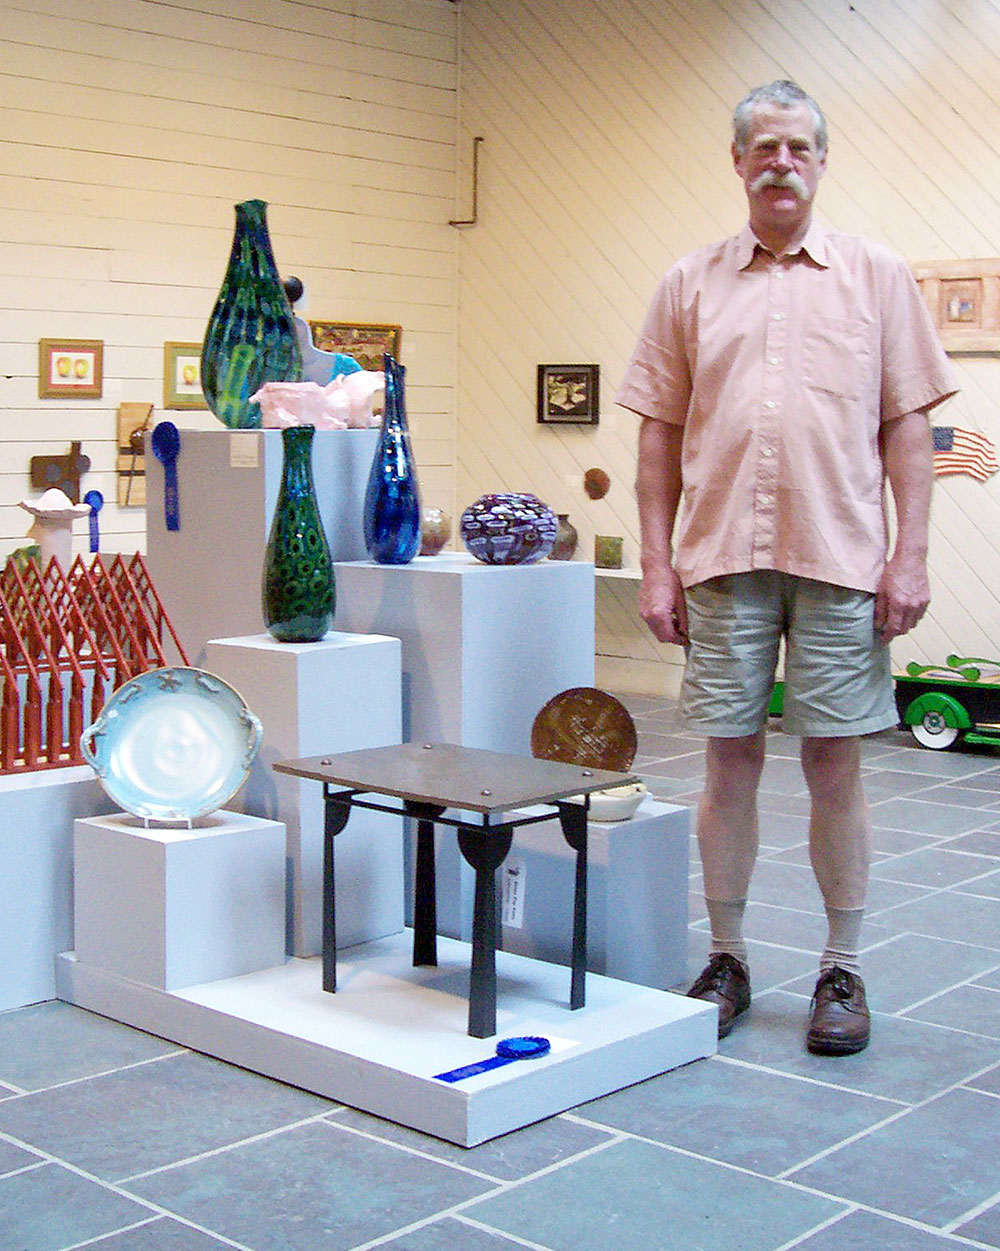 Jbgalleries/stone_top/images/blacksmith_furniture_maker_stone_top_table_craft  Exhibition_rehoboth_art_league